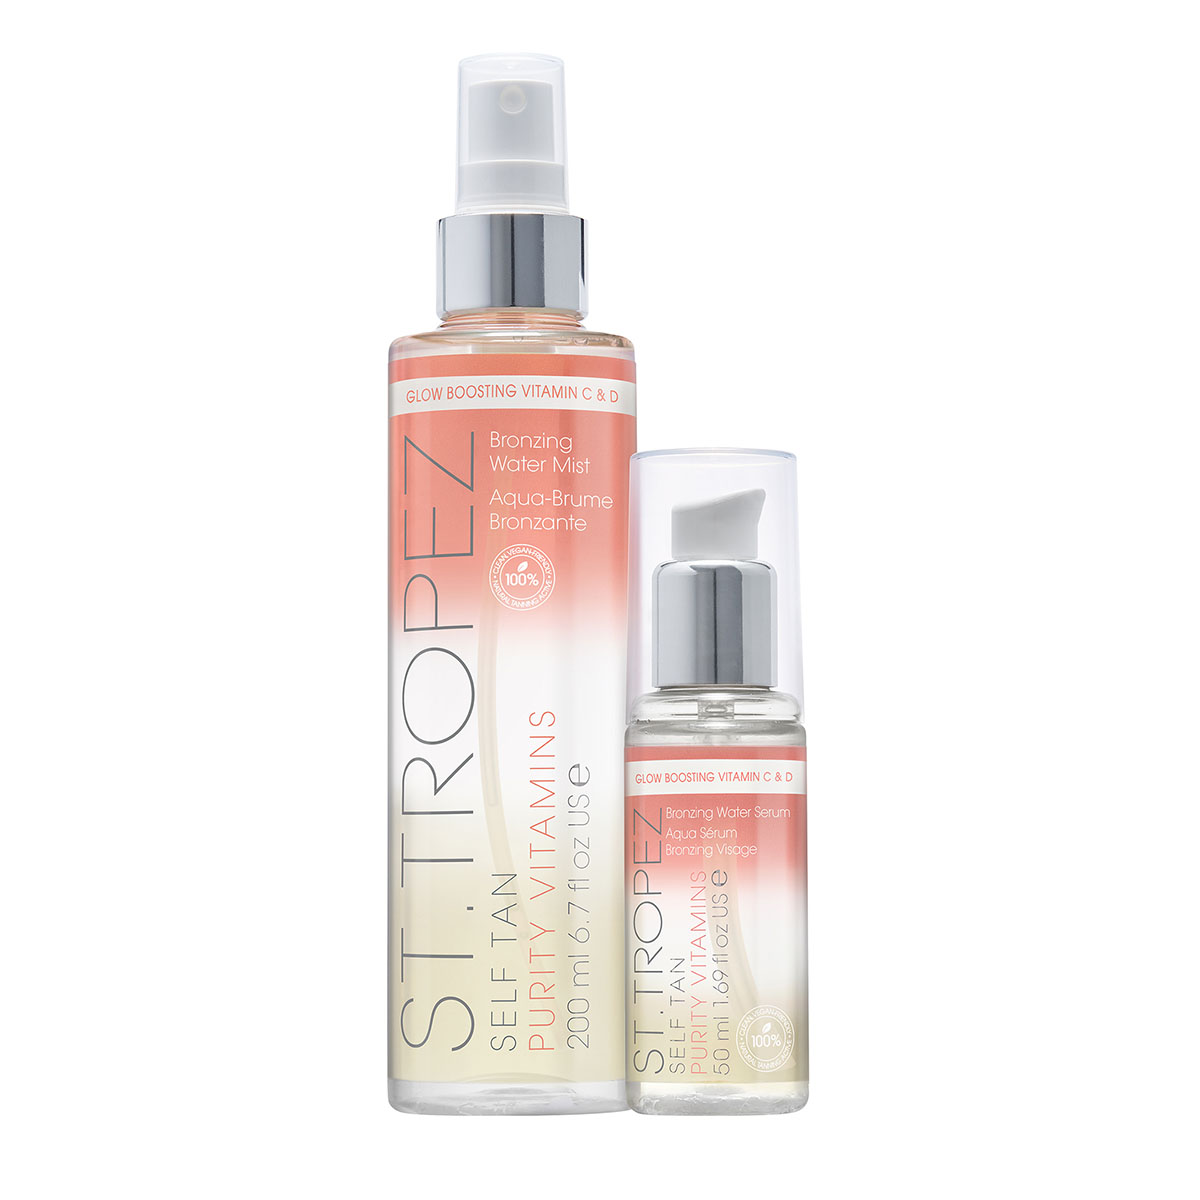 St.Tropez Self Tan Purity Vitamins Duo